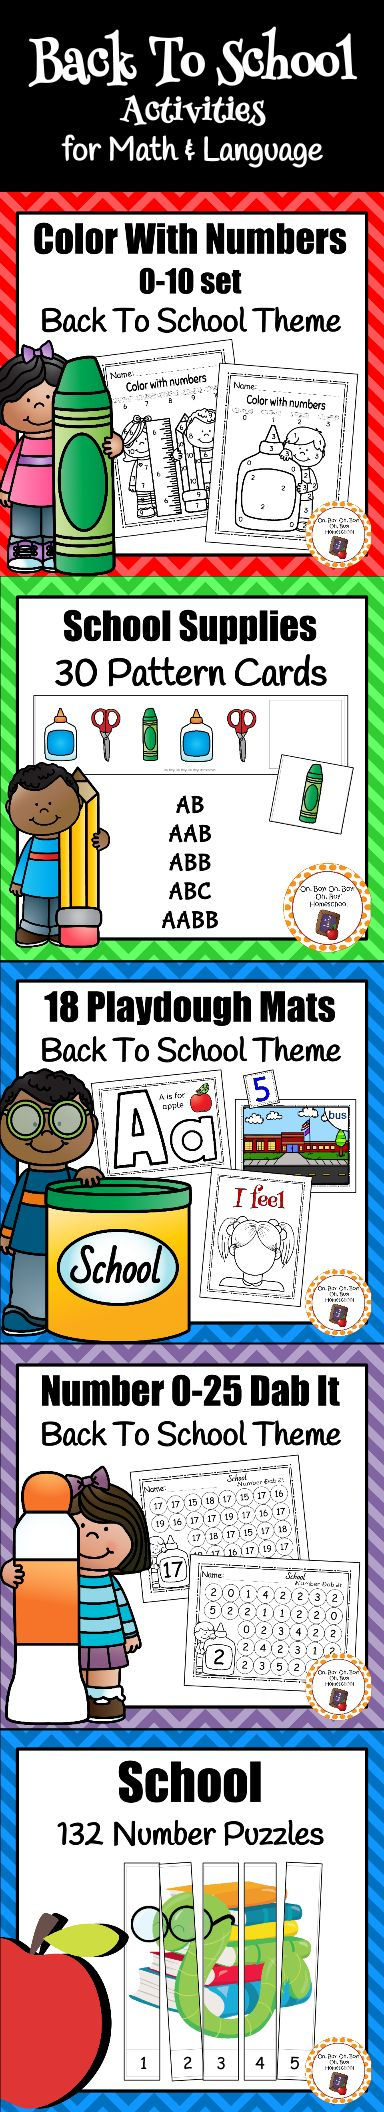 I love these educational back to school activities!  My kids have so much fun LEARNING!  Work on number recognition, patterns, letter recognition, color recognition and more!